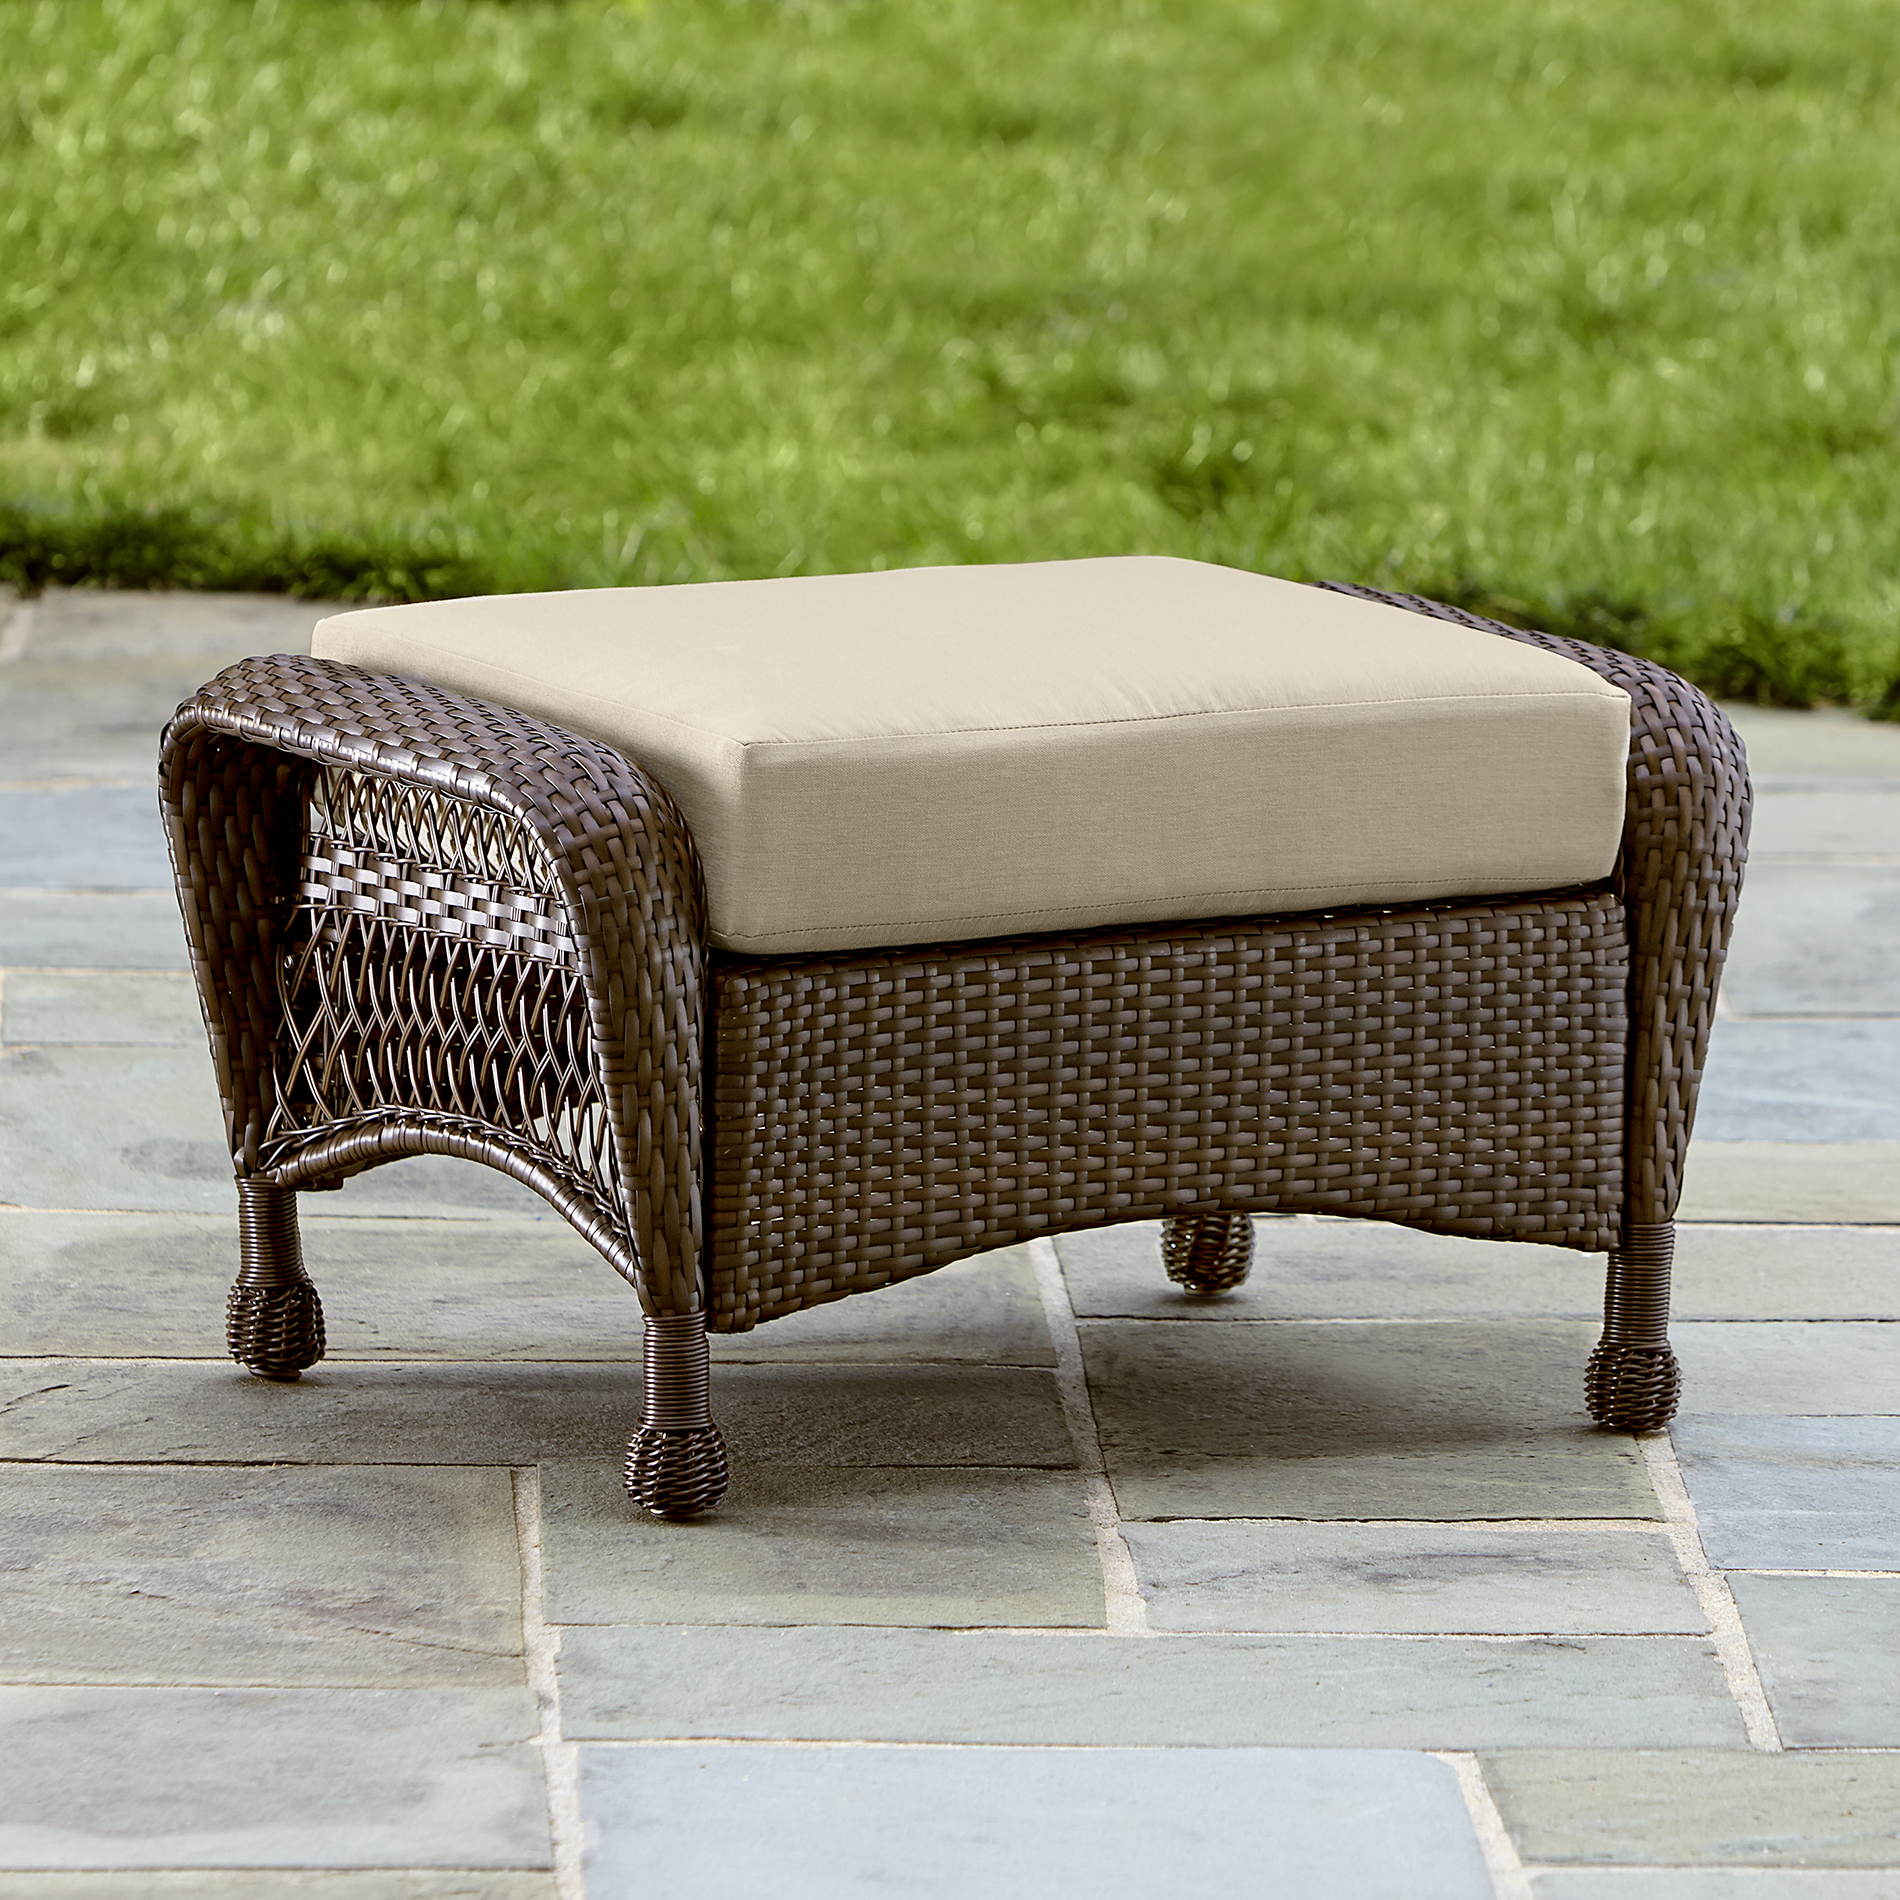 Grand Harbor Street Small Ottoman - Outdoor Living